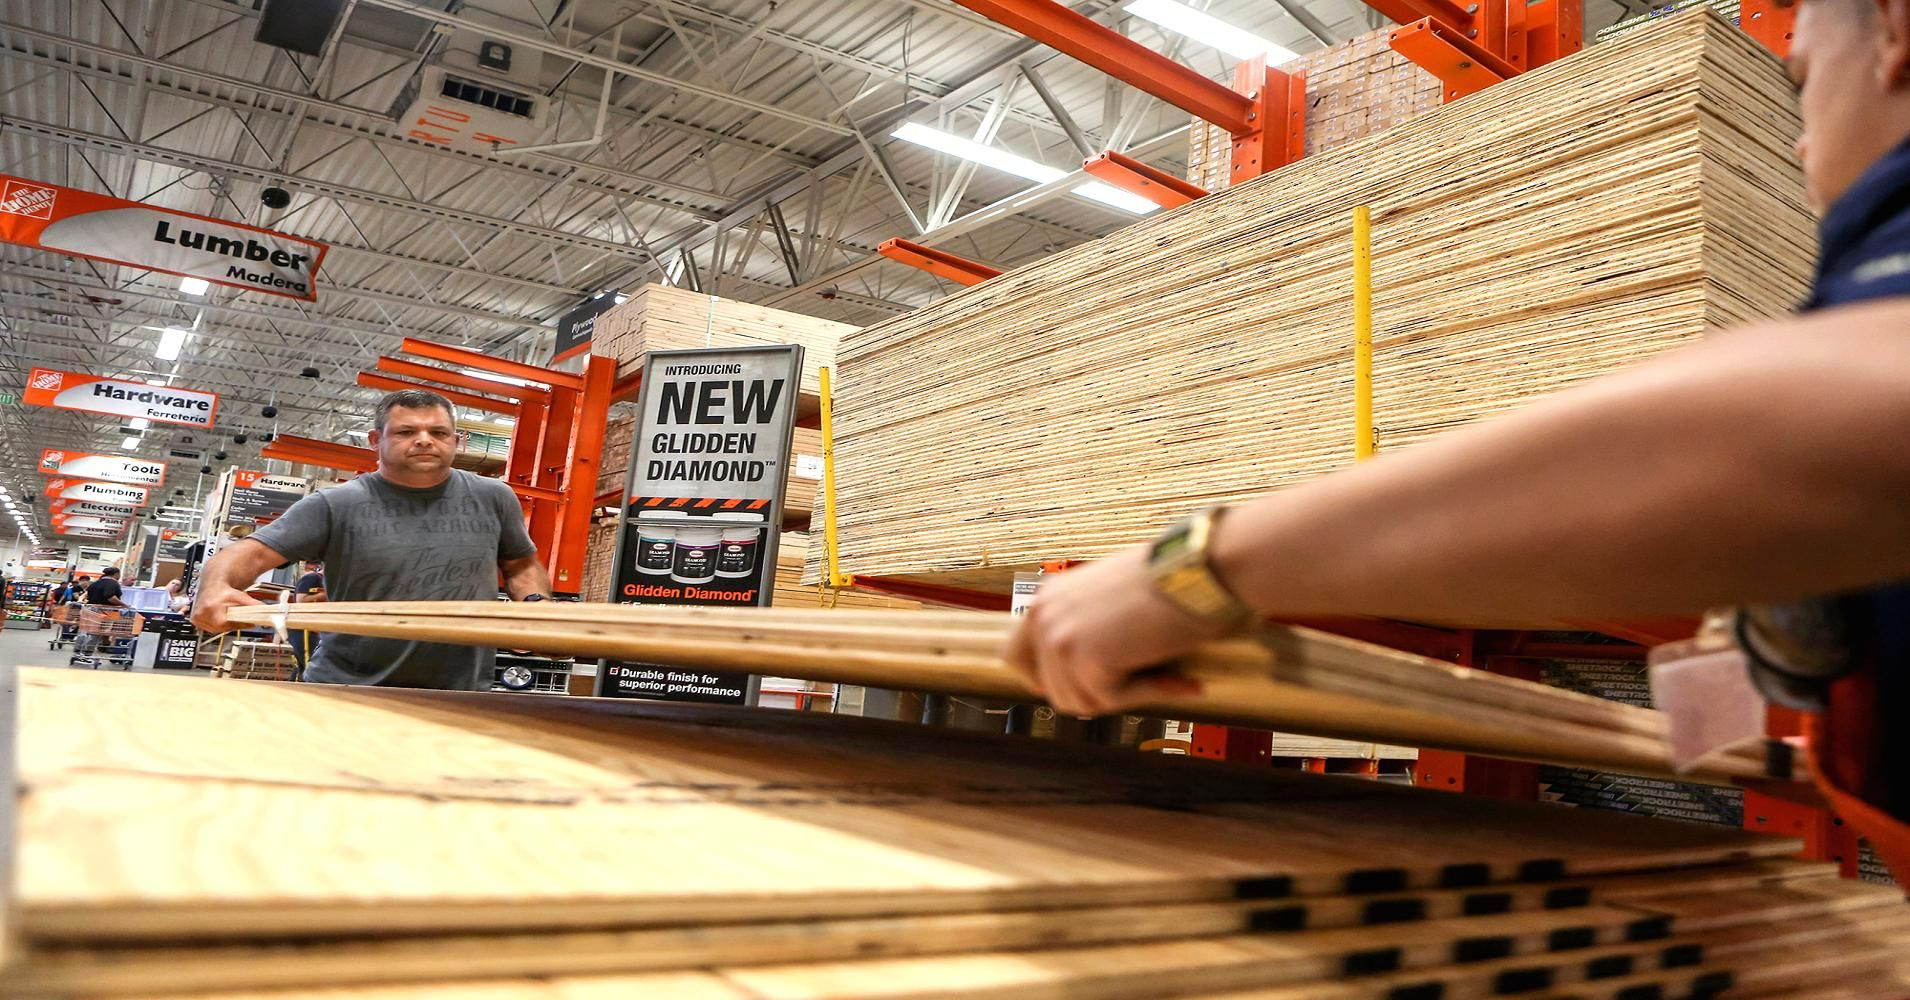 Home depot samestore sales boosted by hurricanes and